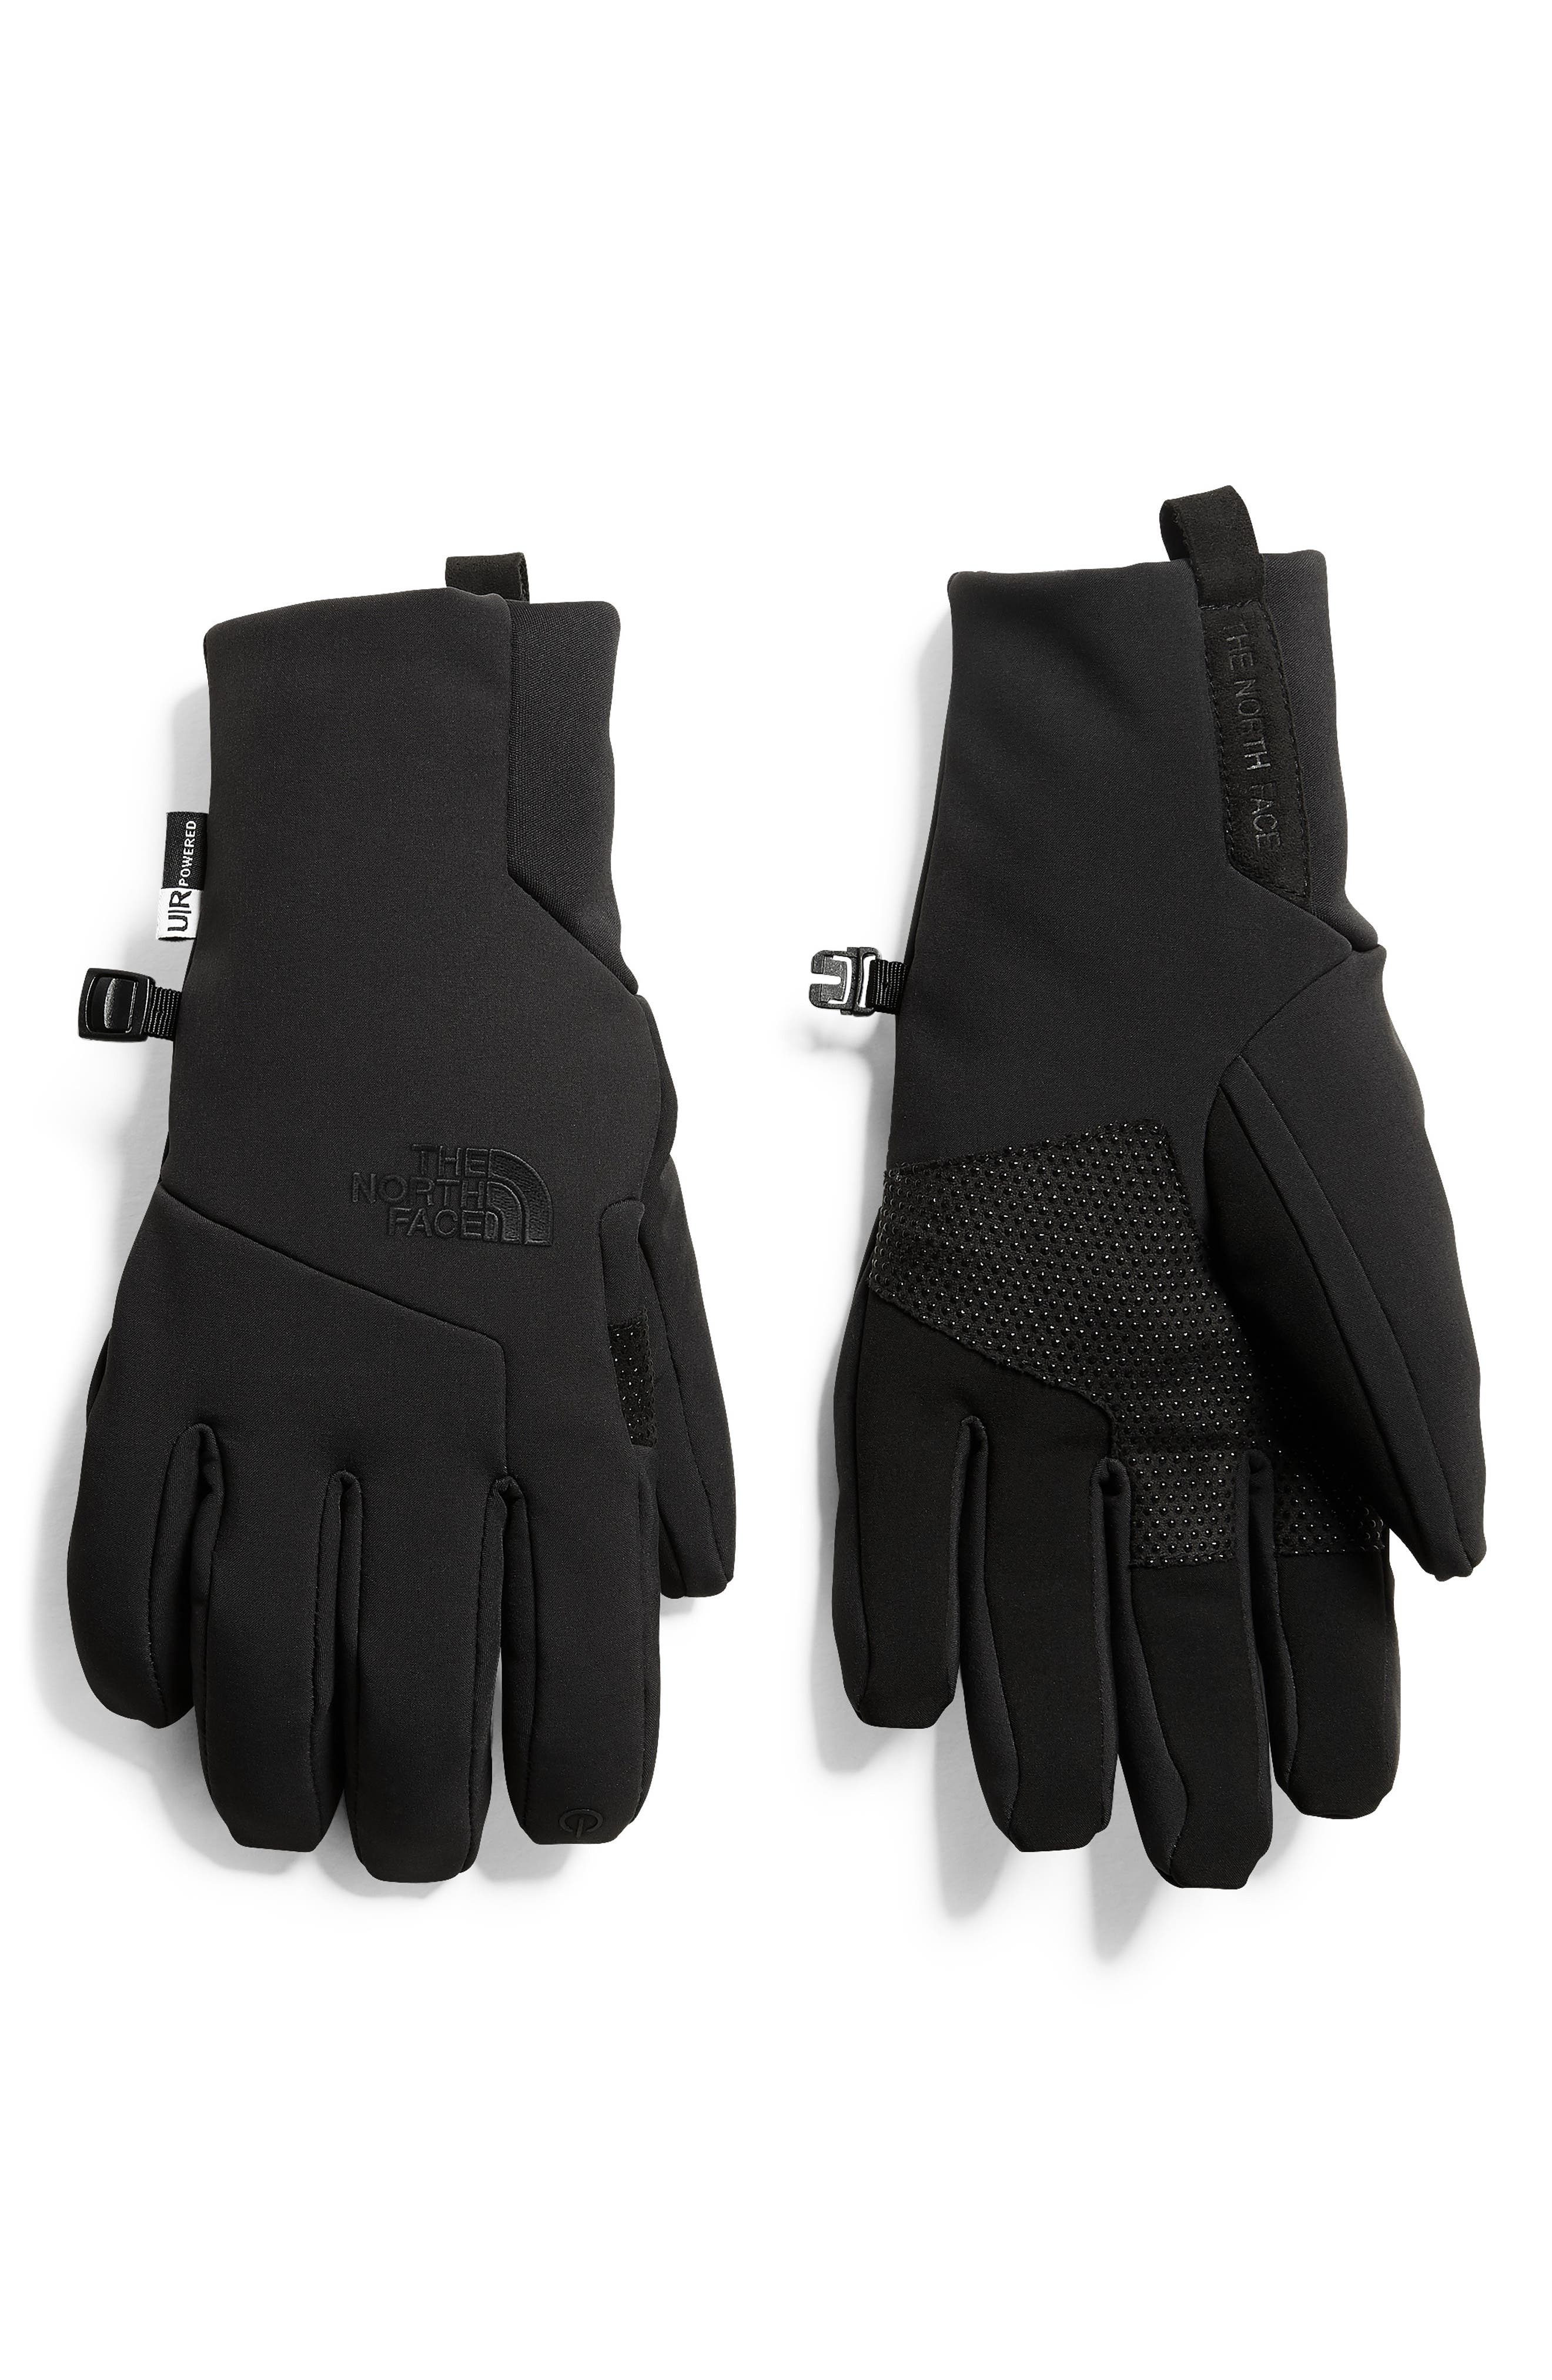 THE NORTH FACE Etip Apex Gloves, Main, color, 001